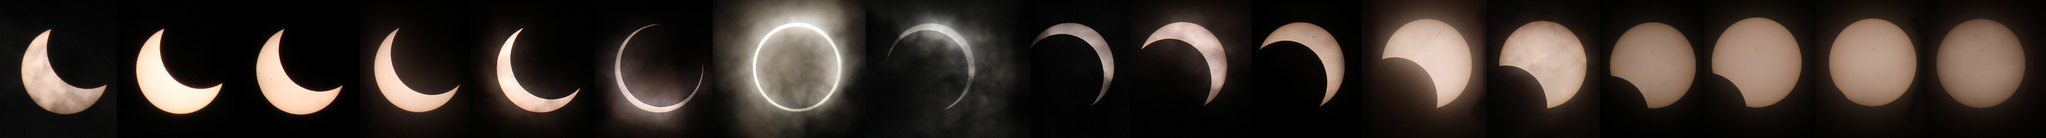 Annular Eclipse - Japan - May 21, 2012 CREDIT: George Olcott